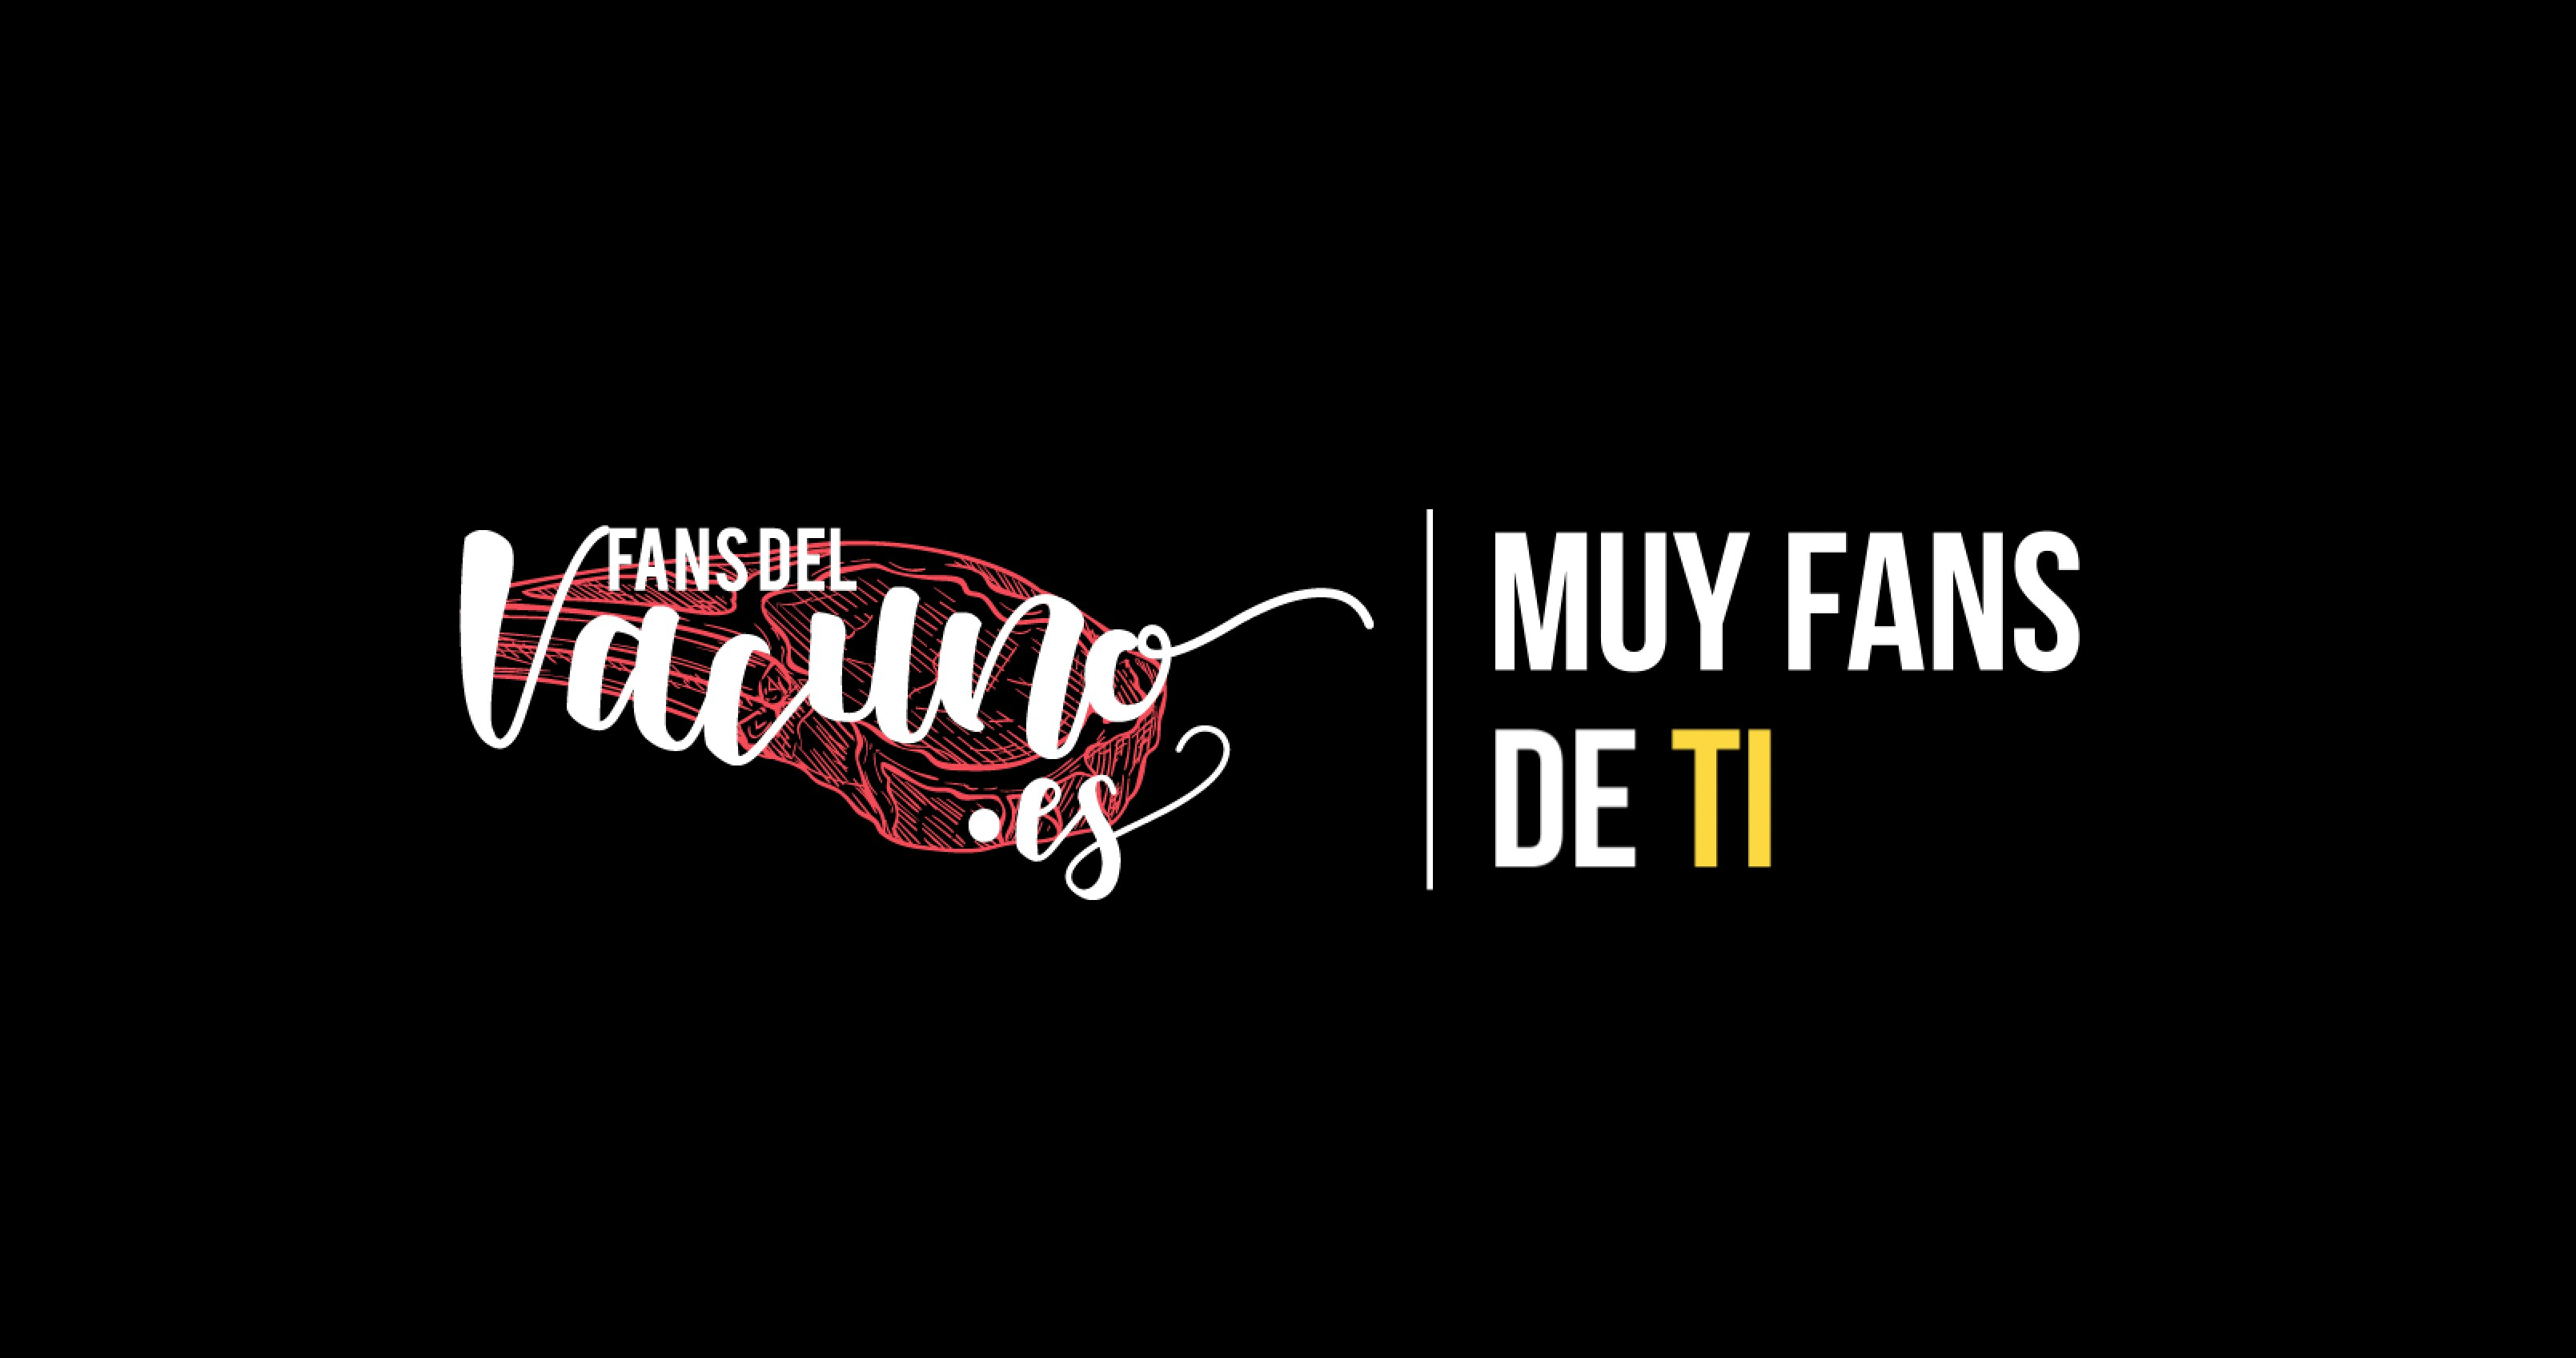 The Beef Sector Launches The Beef Solidarity Campaign 'Muy Fans De Ti' Before The Covid-19